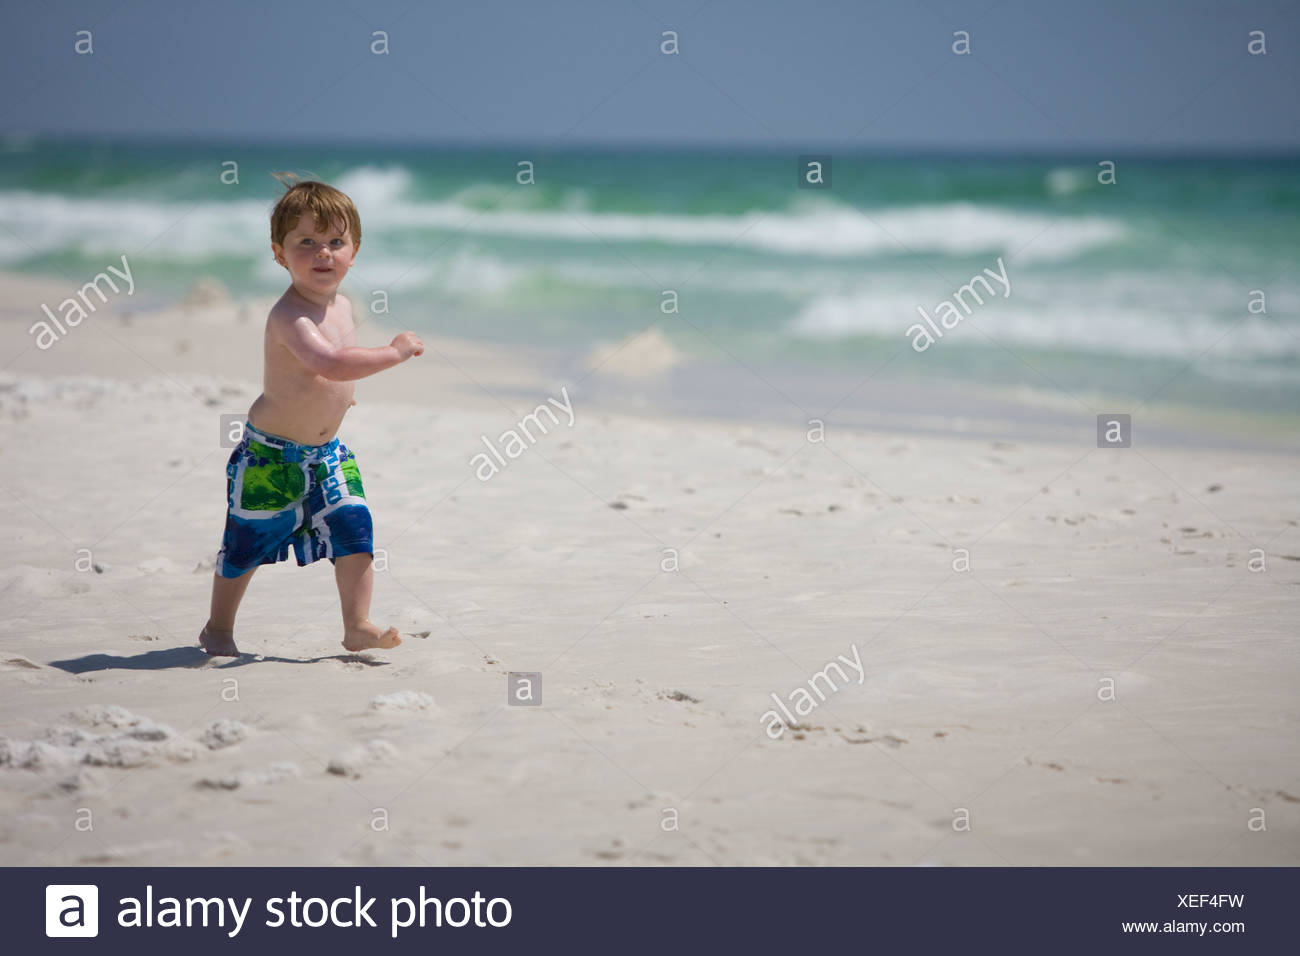 A little boy struts down the beach with the ocean in background. - Stock Image